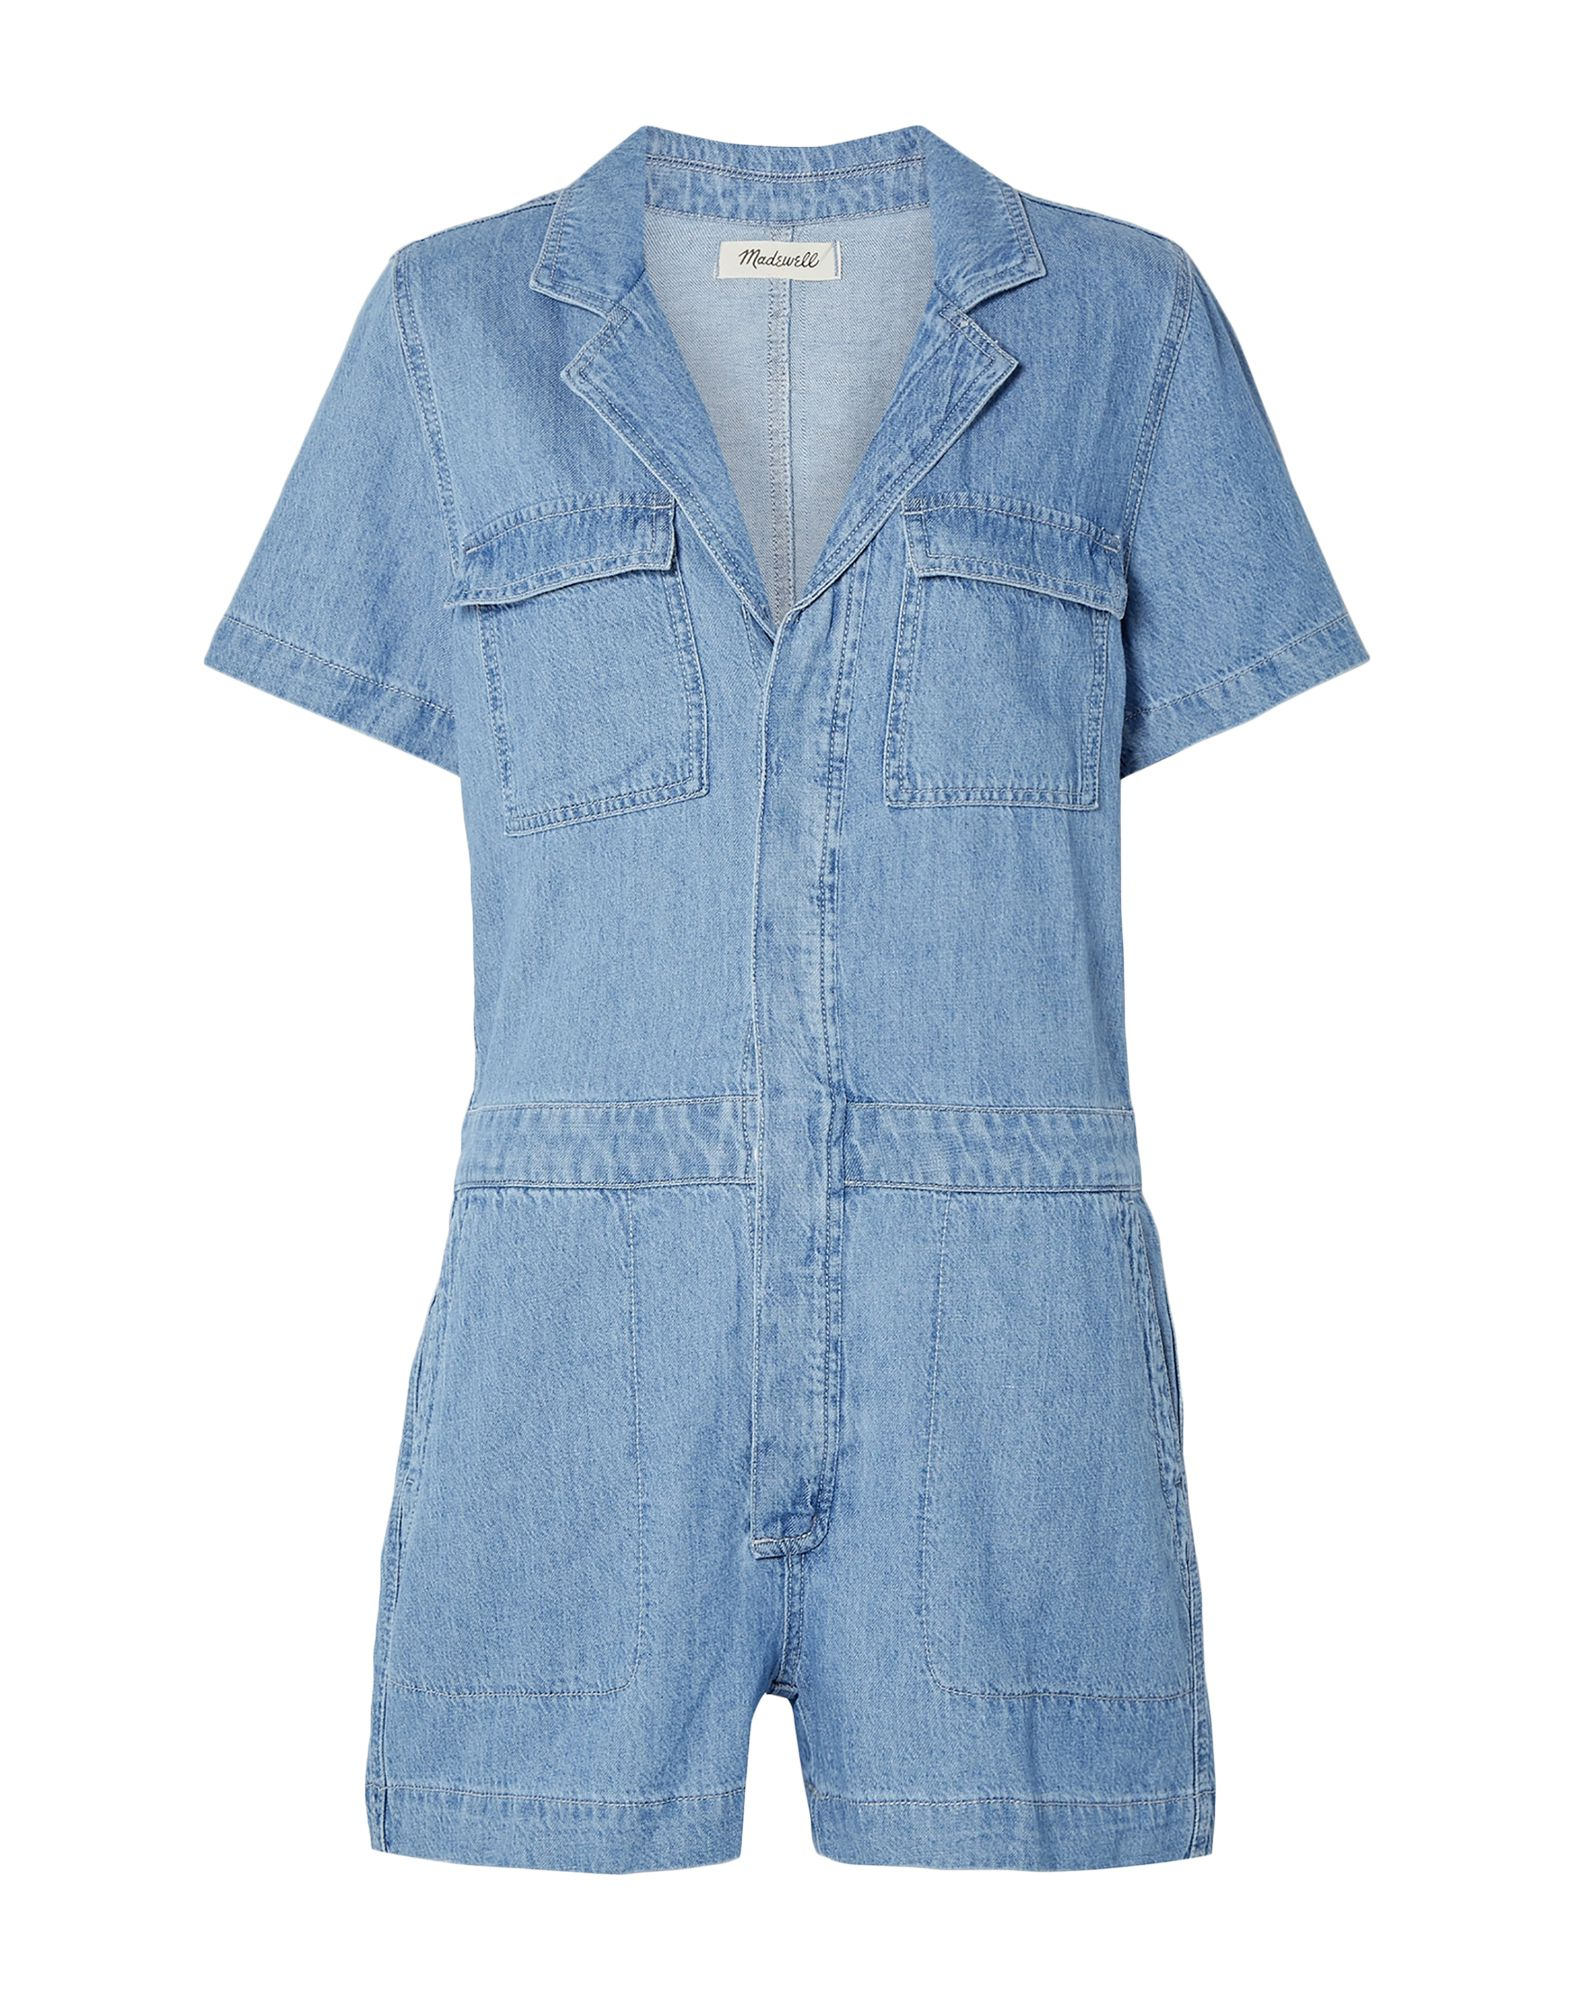 MADEWELL Jumpsuits. denim, no appliqués, solid color, short sleeves, lapel collar, unlined, multipockets, two breast pockets, button closing, front closure. 71% Cotton, 29% Linen